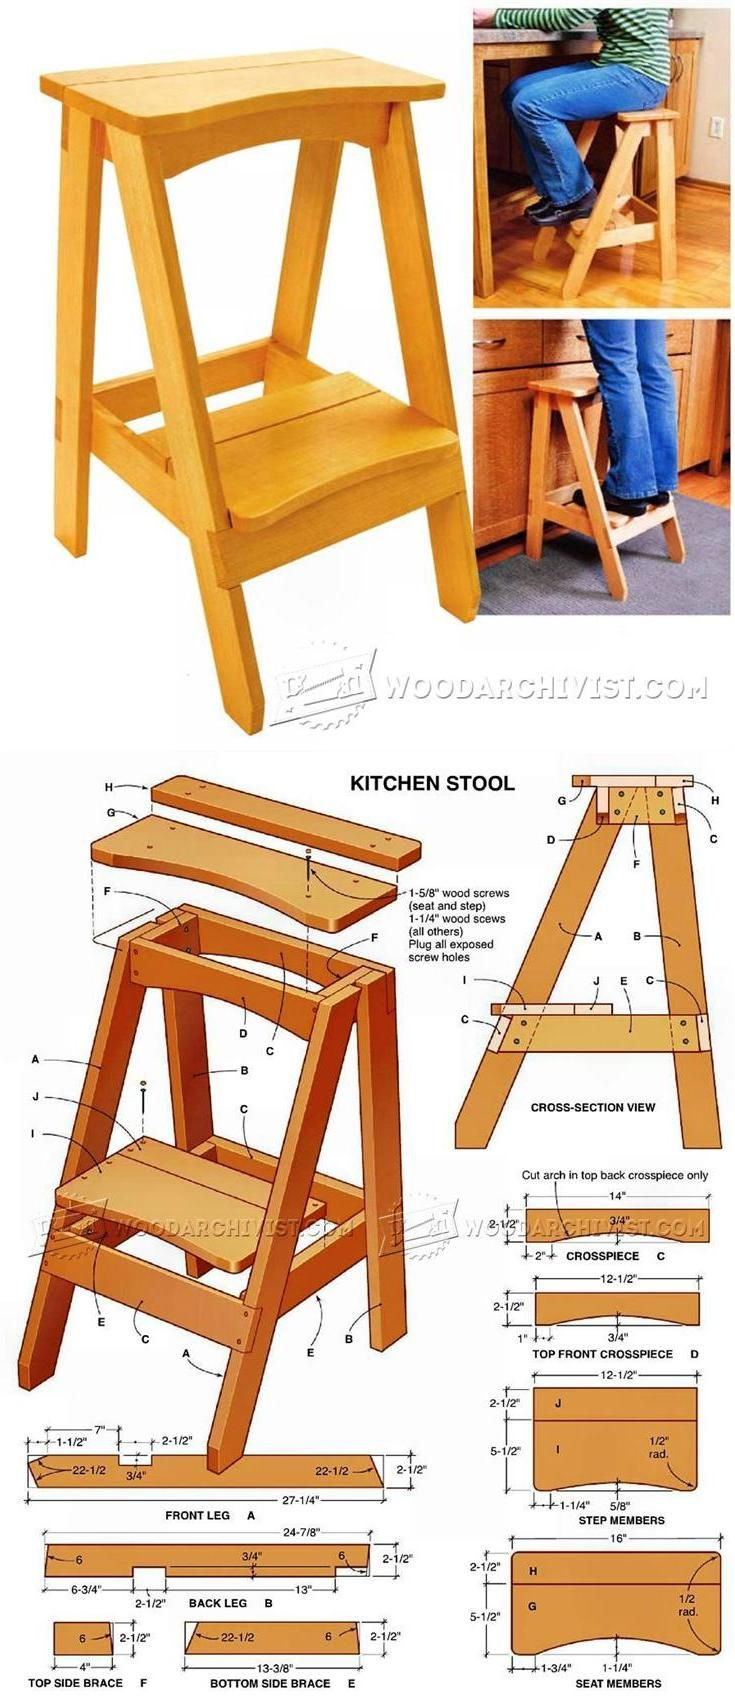 Kitchen Step Stool Plans - Furniture Plans and Projects | WoodArchivist.com  sc 1 st  Pinterest & Best 25+ Kitchen step stool ideas on Pinterest | Short person ... islam-shia.org